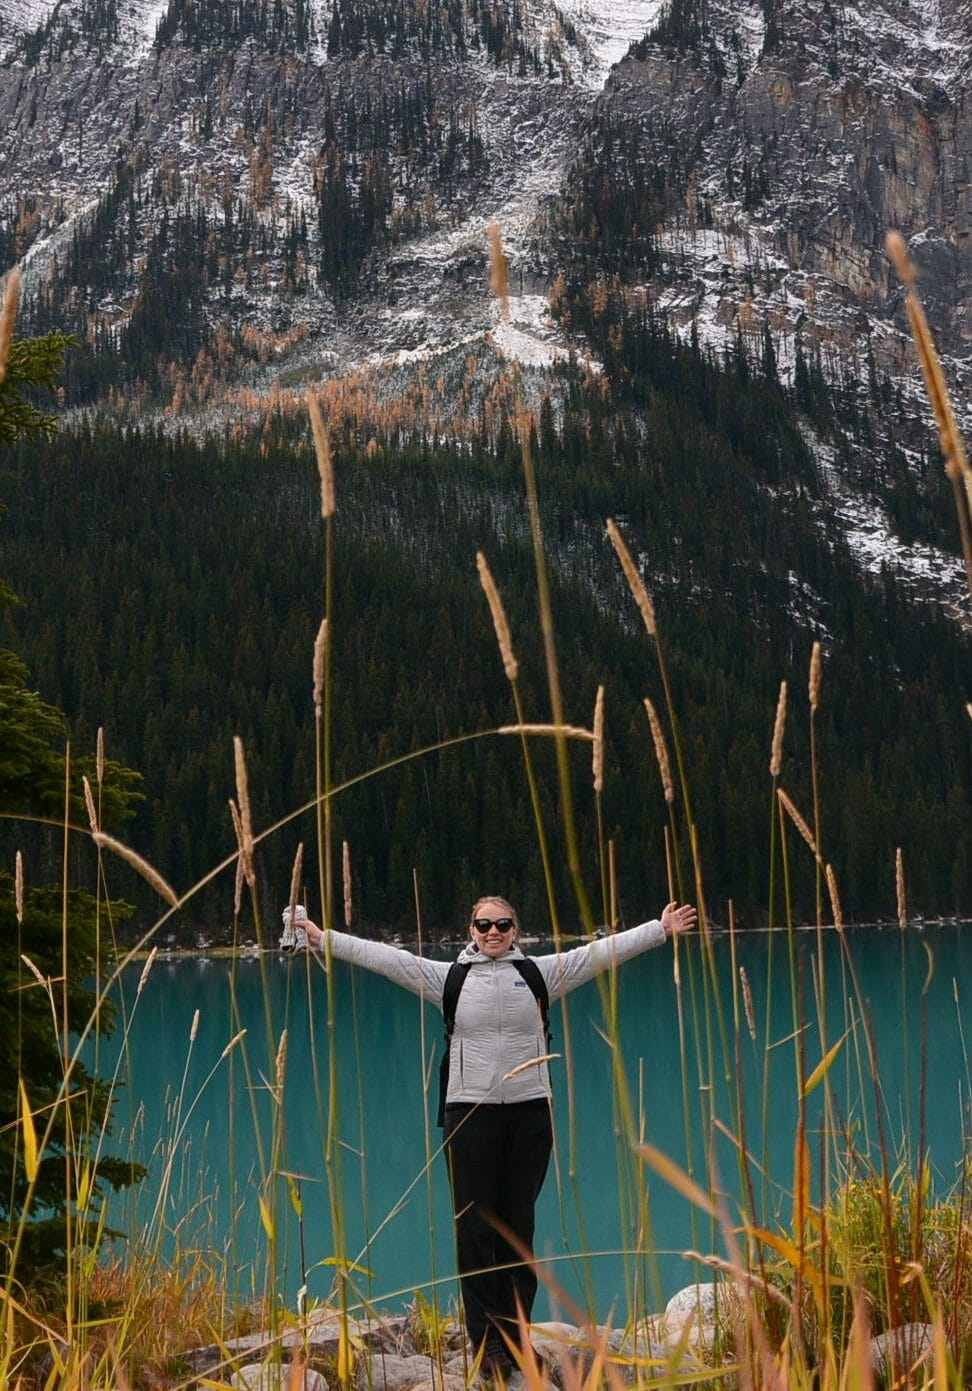 Girl Arms stretched wide by blue lake mountains hiking